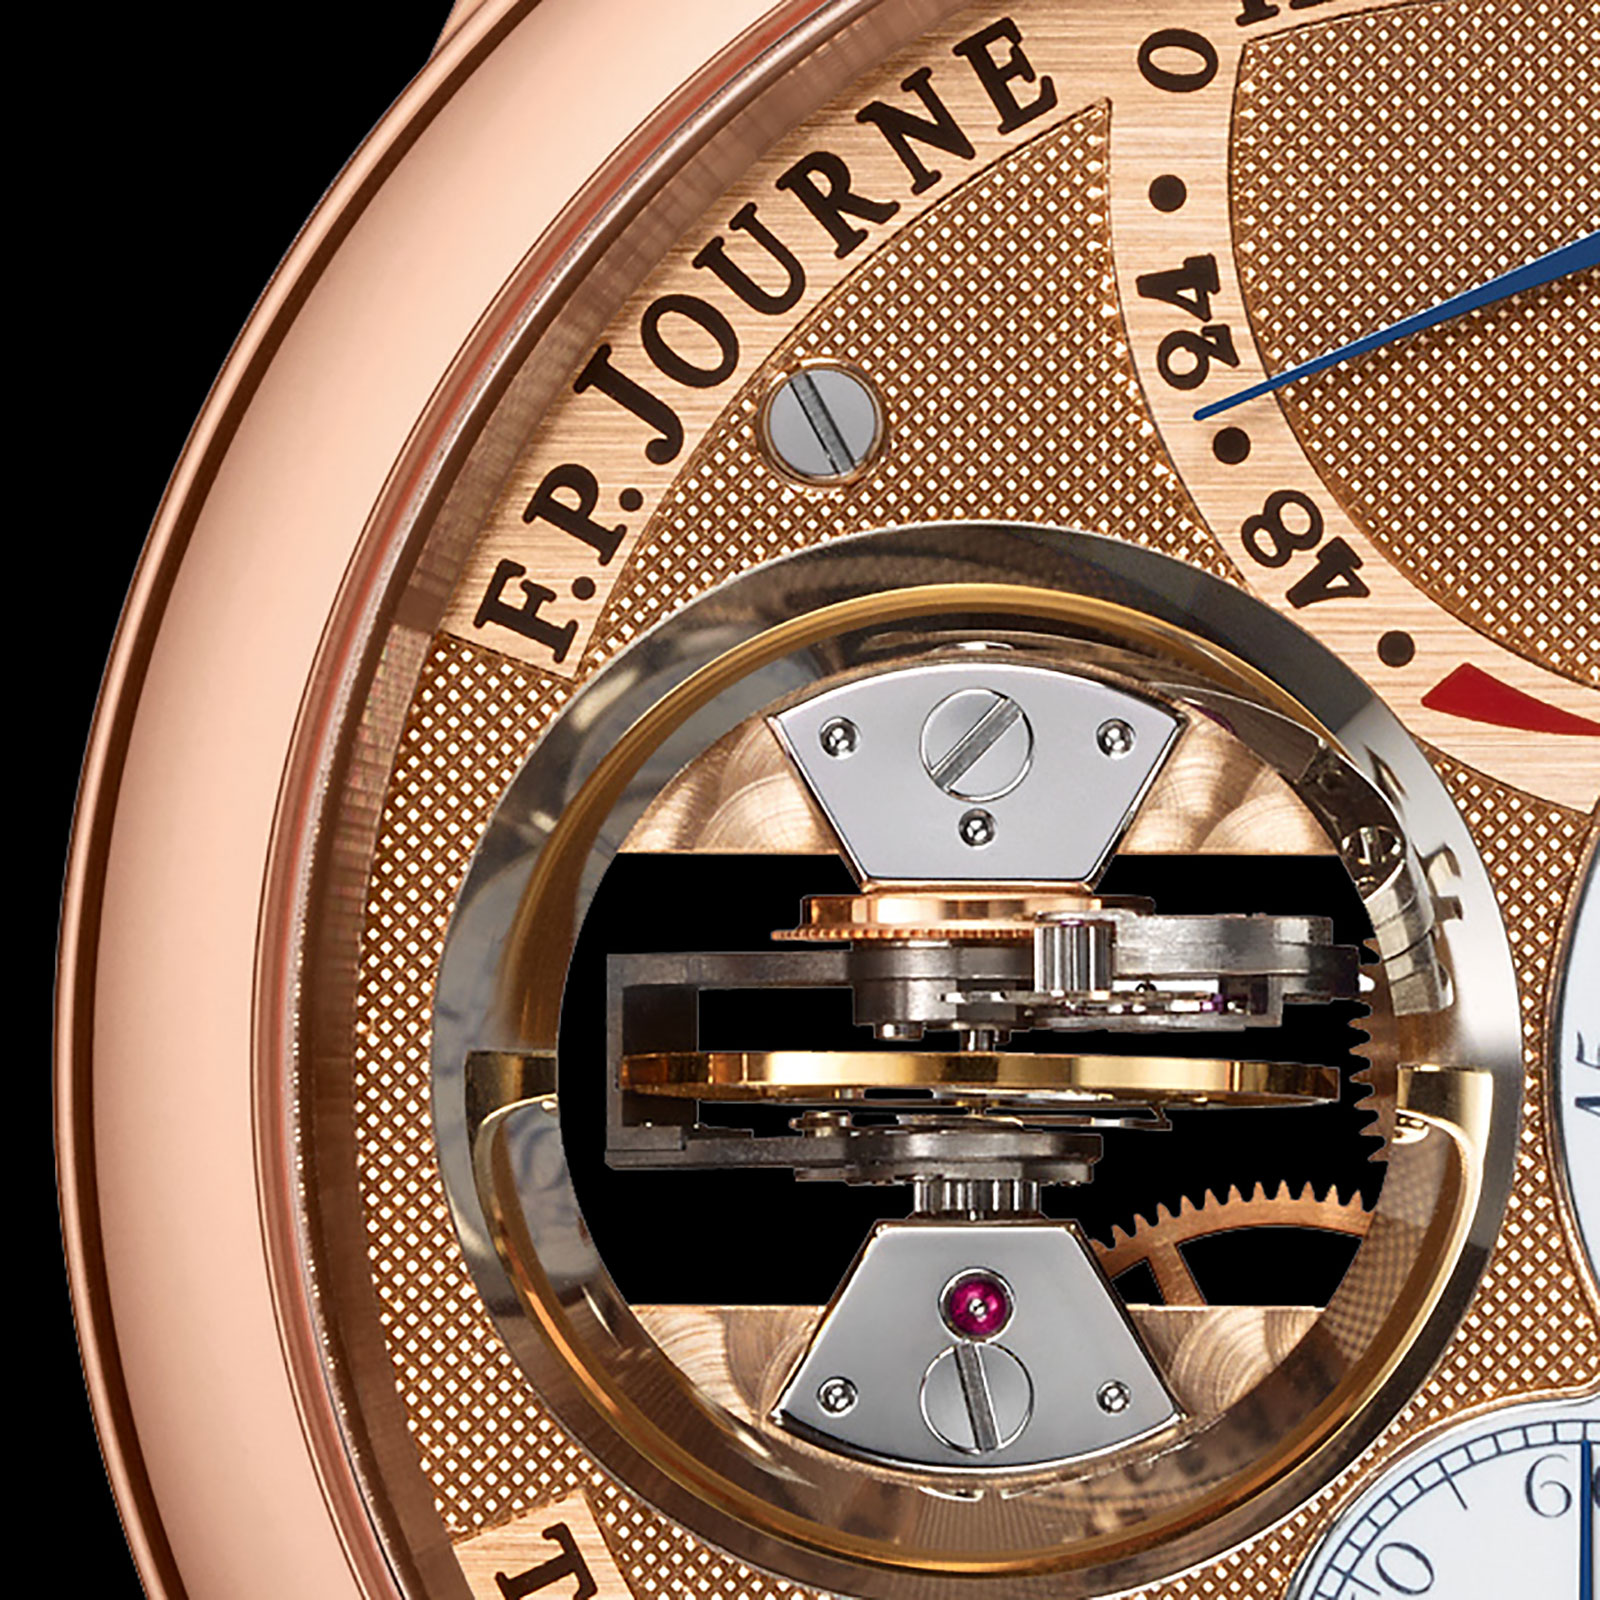 FP Journe Tourbillon Souverain Vertical 3